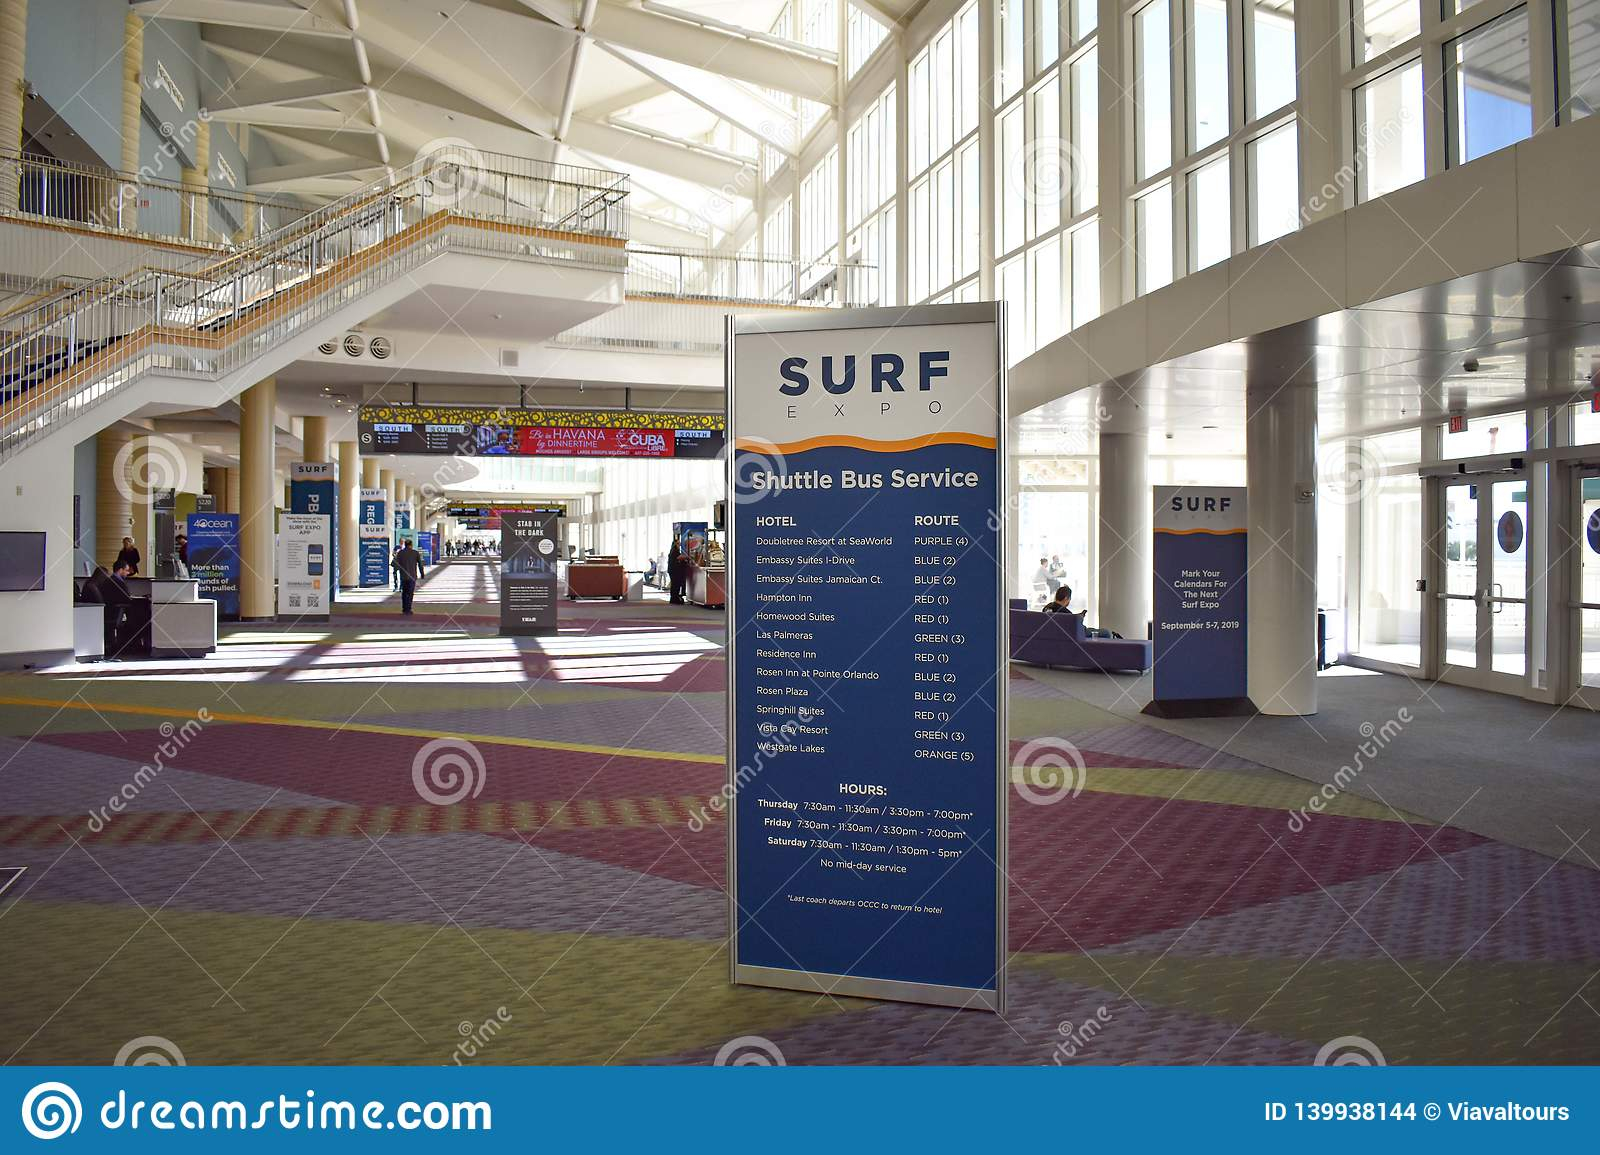 Surf Schedule Expo Sign In Orlando Convention Center At With Orlando Convention Center Schedule